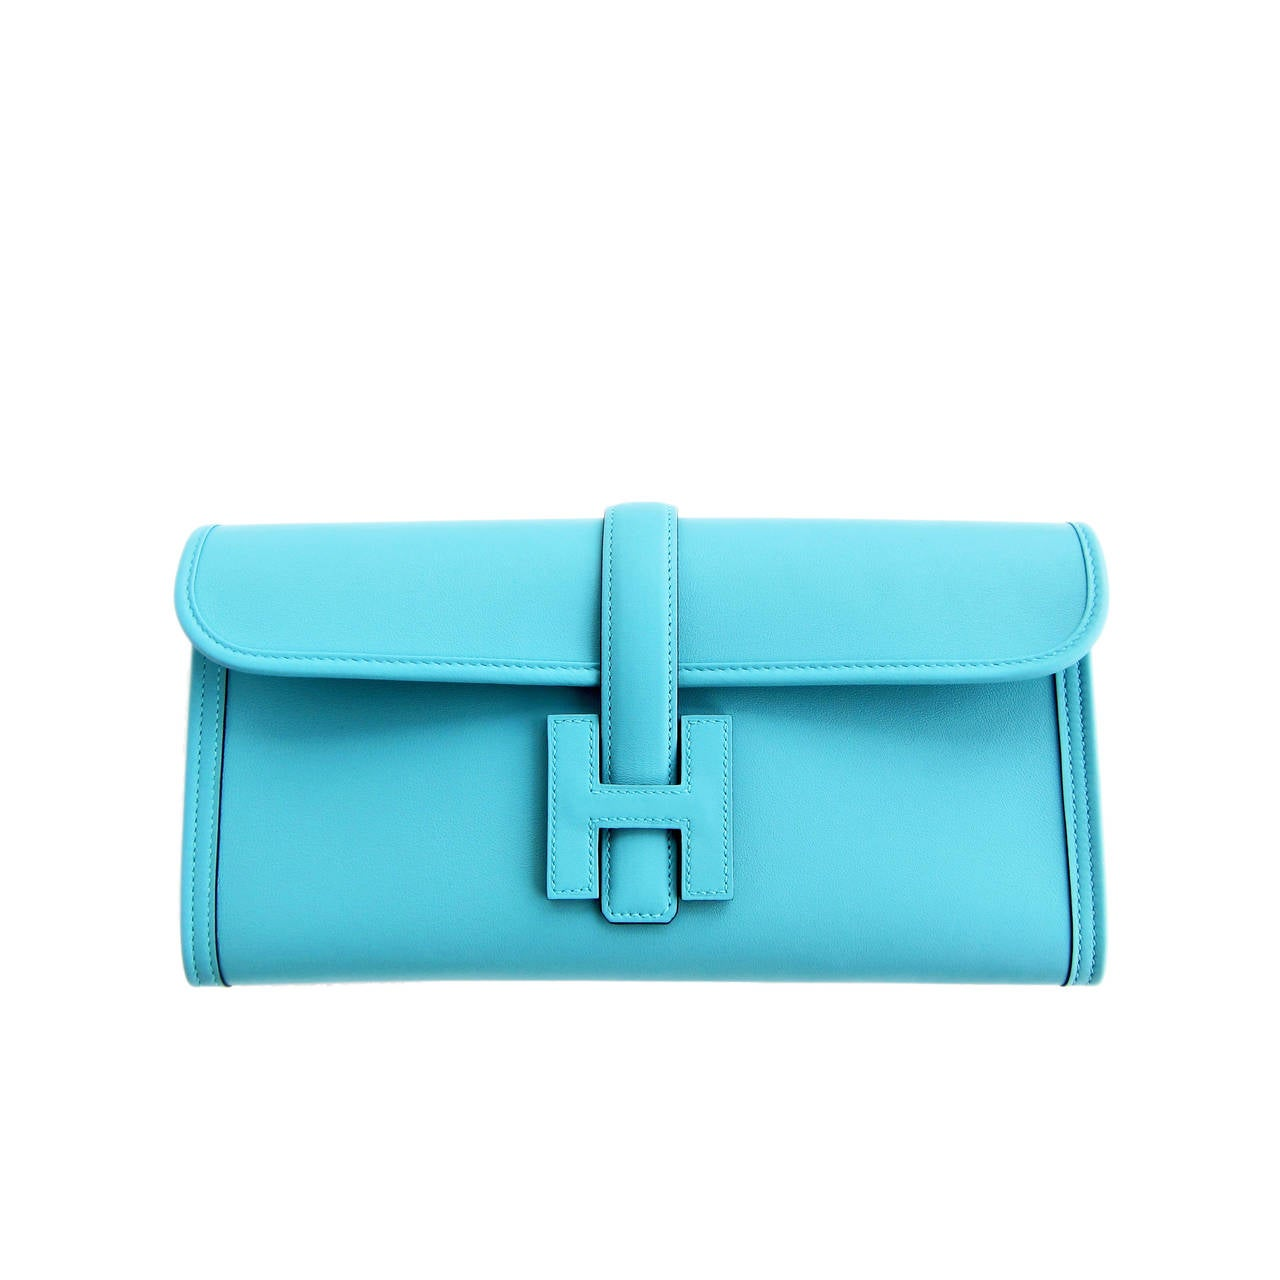 Hermes Blue Atoll Jige Elan 29cm Swift Clutch Bag Stunning For Sale